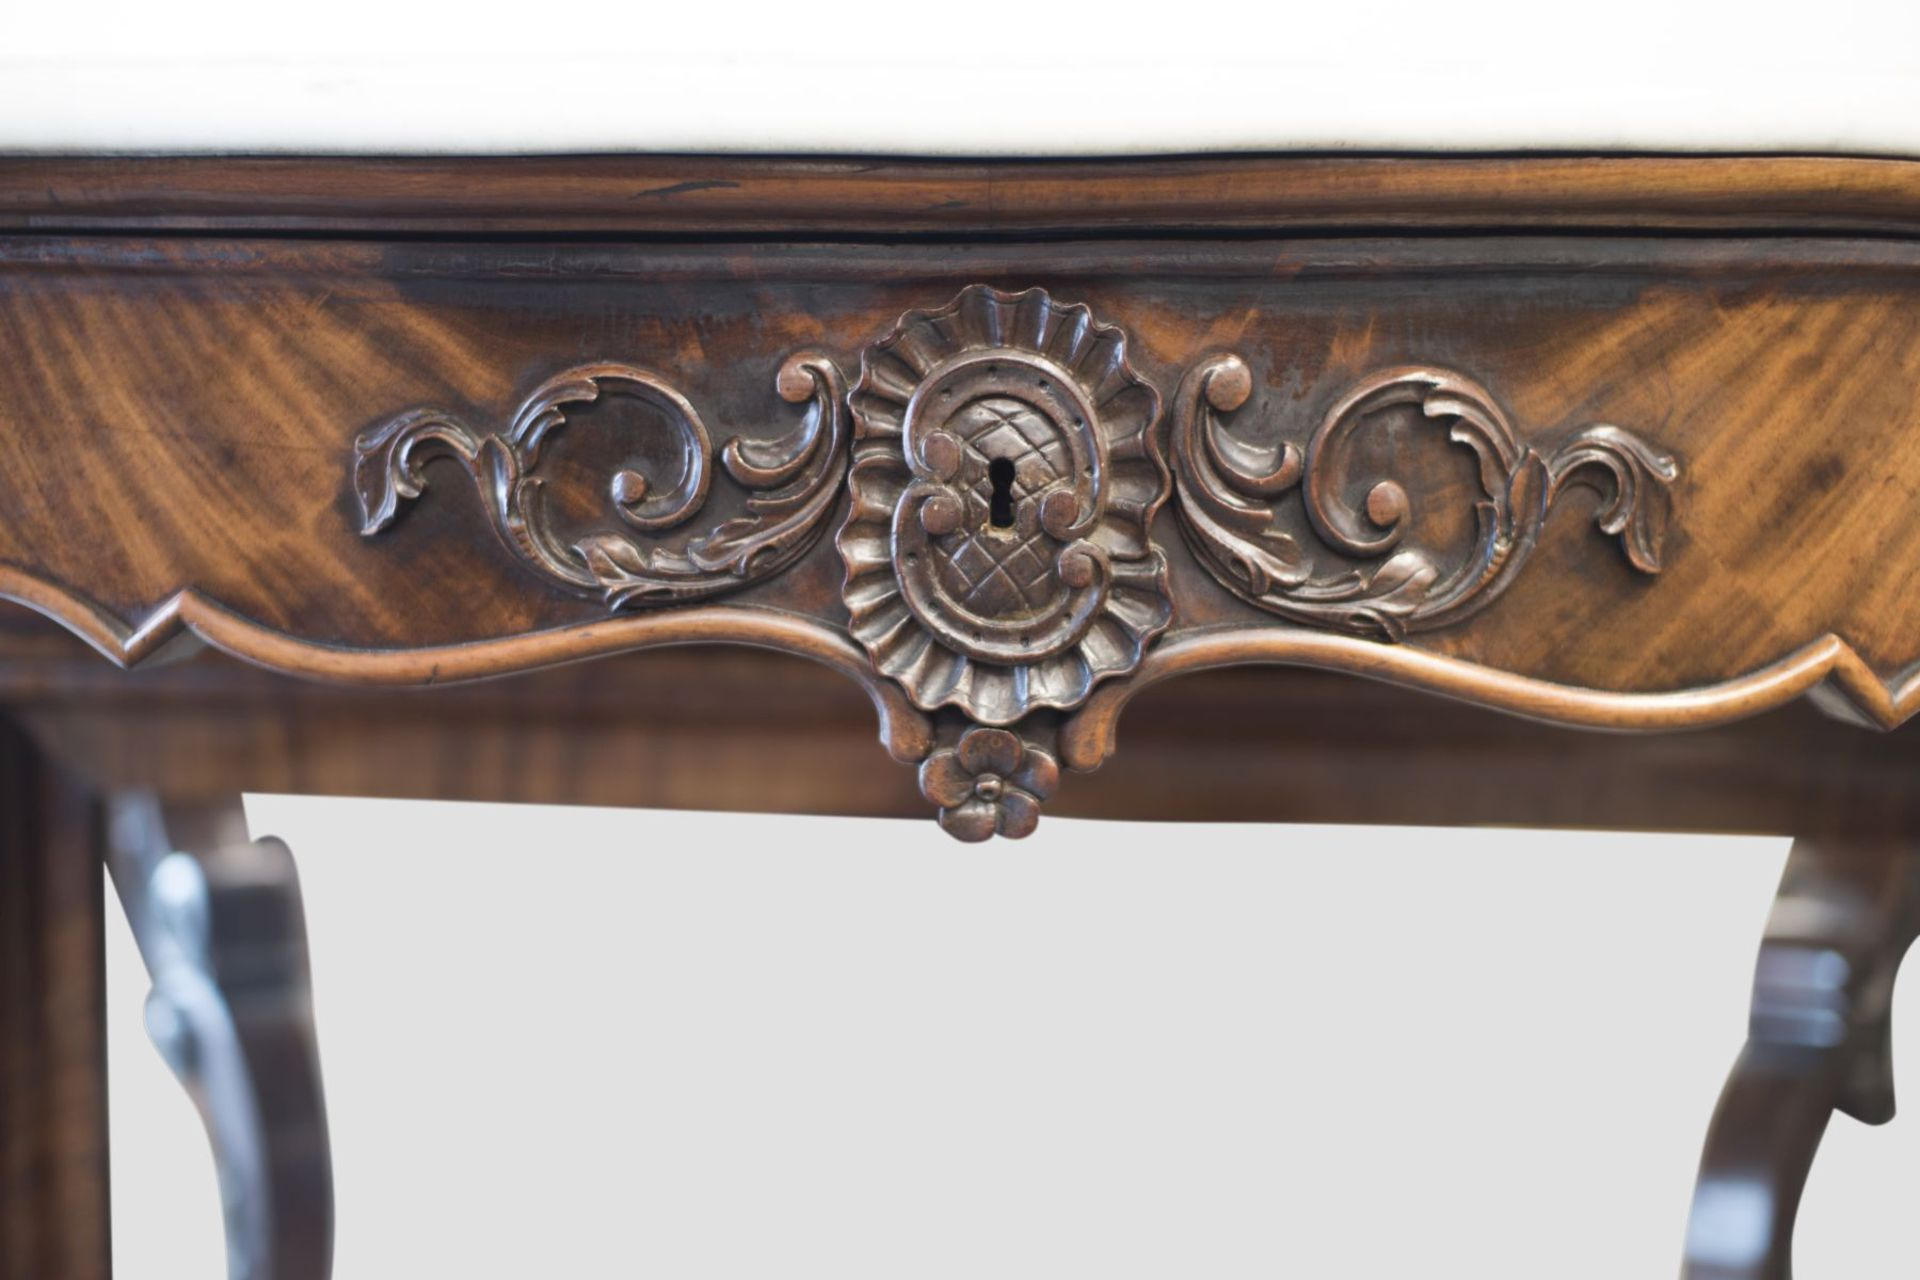 Baroque Buffet with Mirror and Marble Top - Bild 4 aus 6